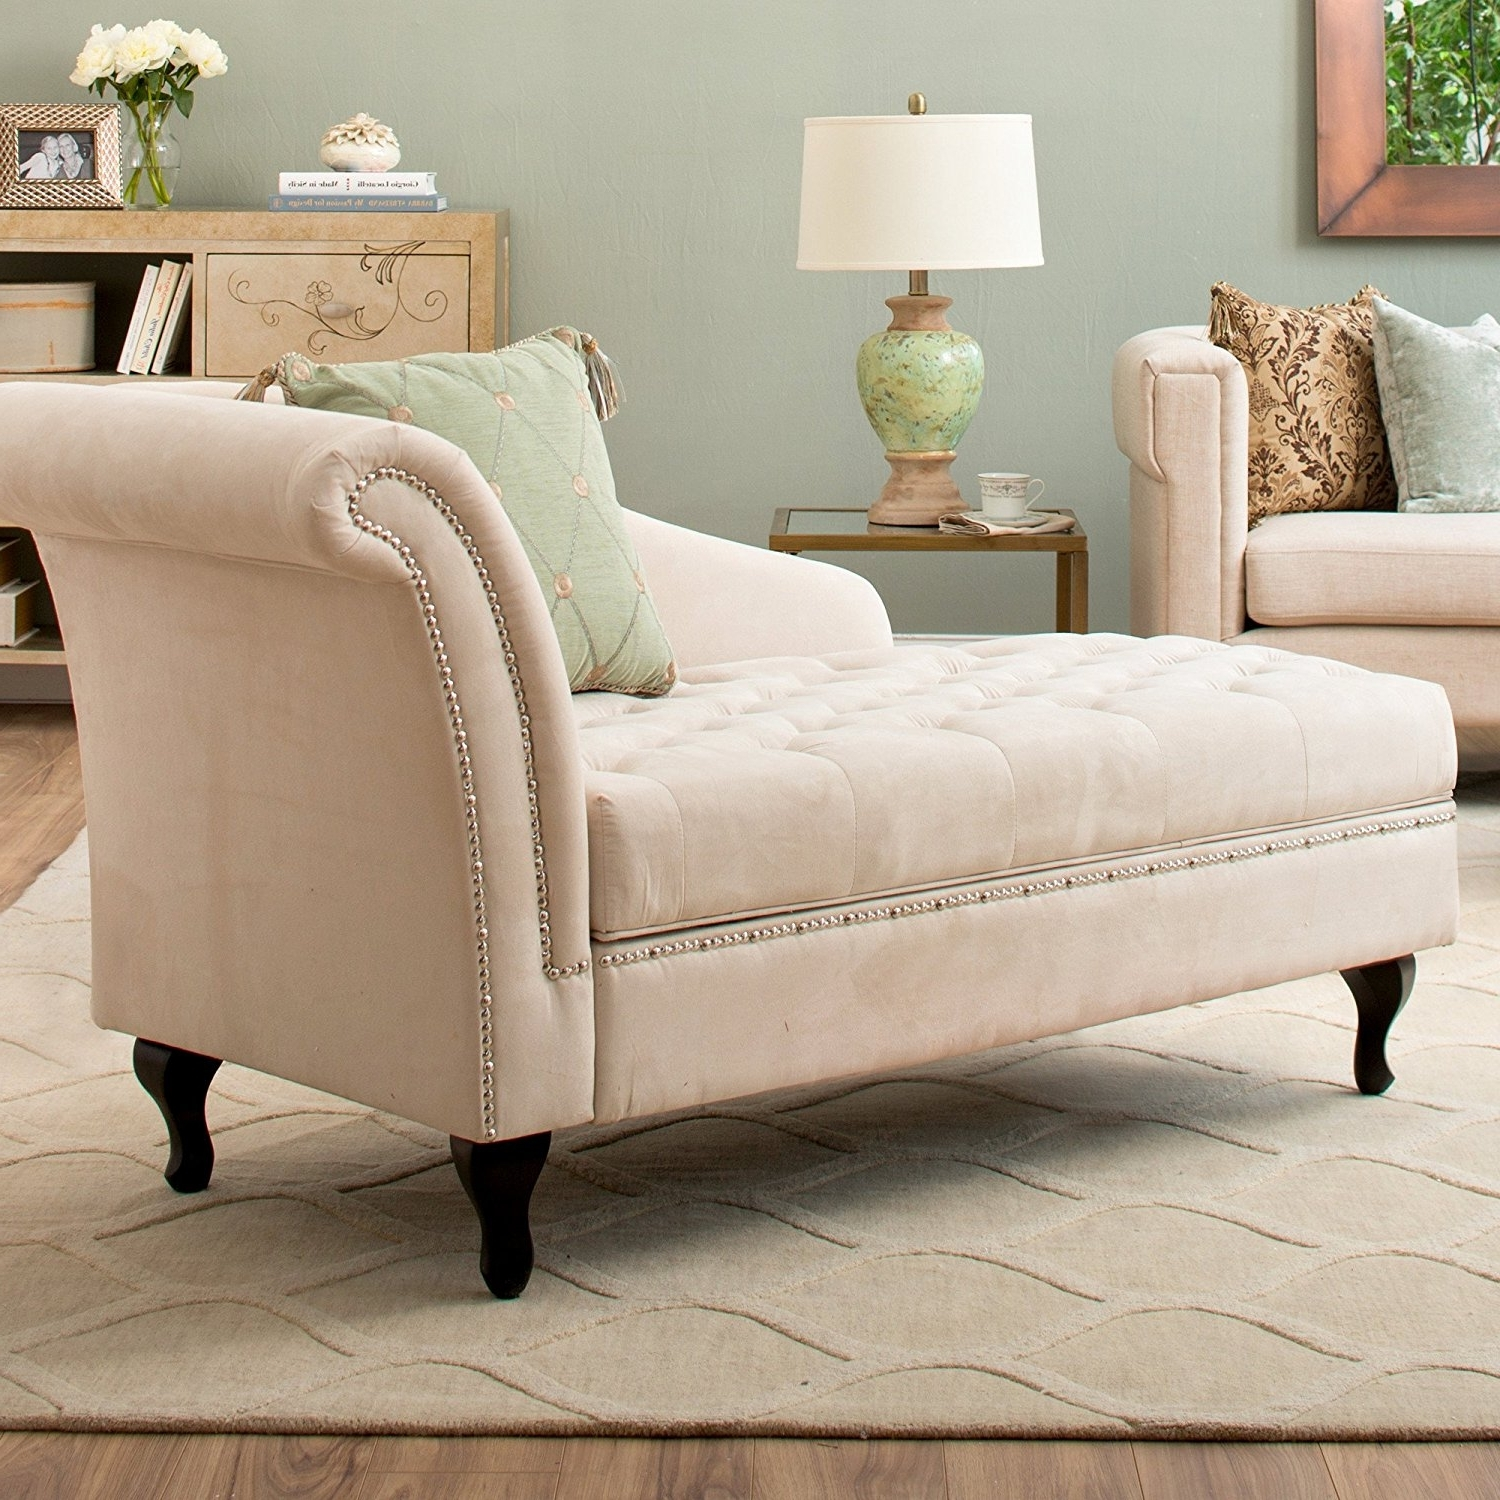 Most Recent Chaise Chairs For Bedroom Throughout Lovely Bedroom Chaise Lounge Chairs (38 Photos) (View 11 of 15)